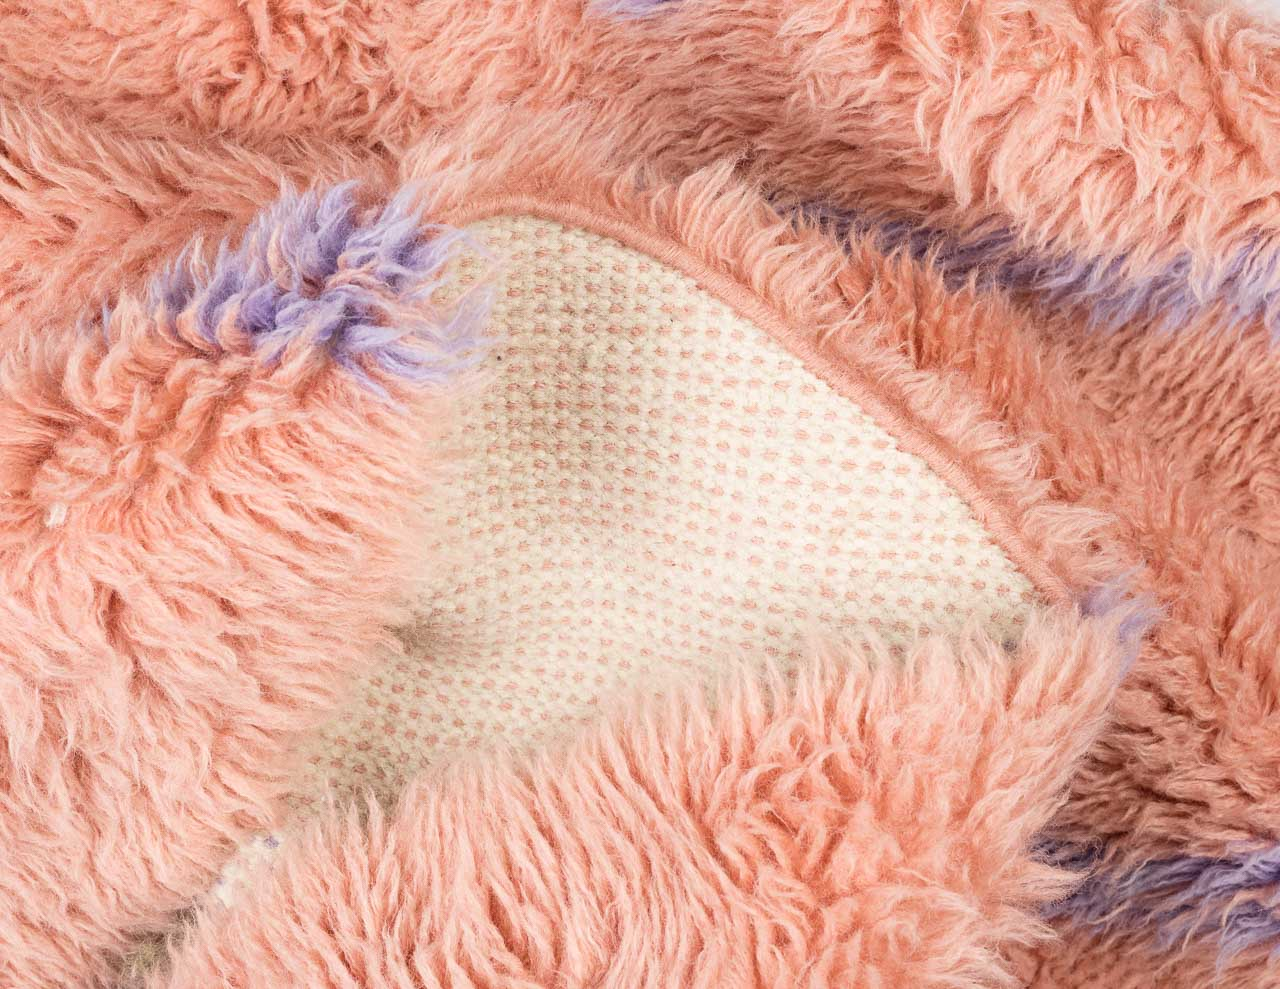 pink rug in feathery texture